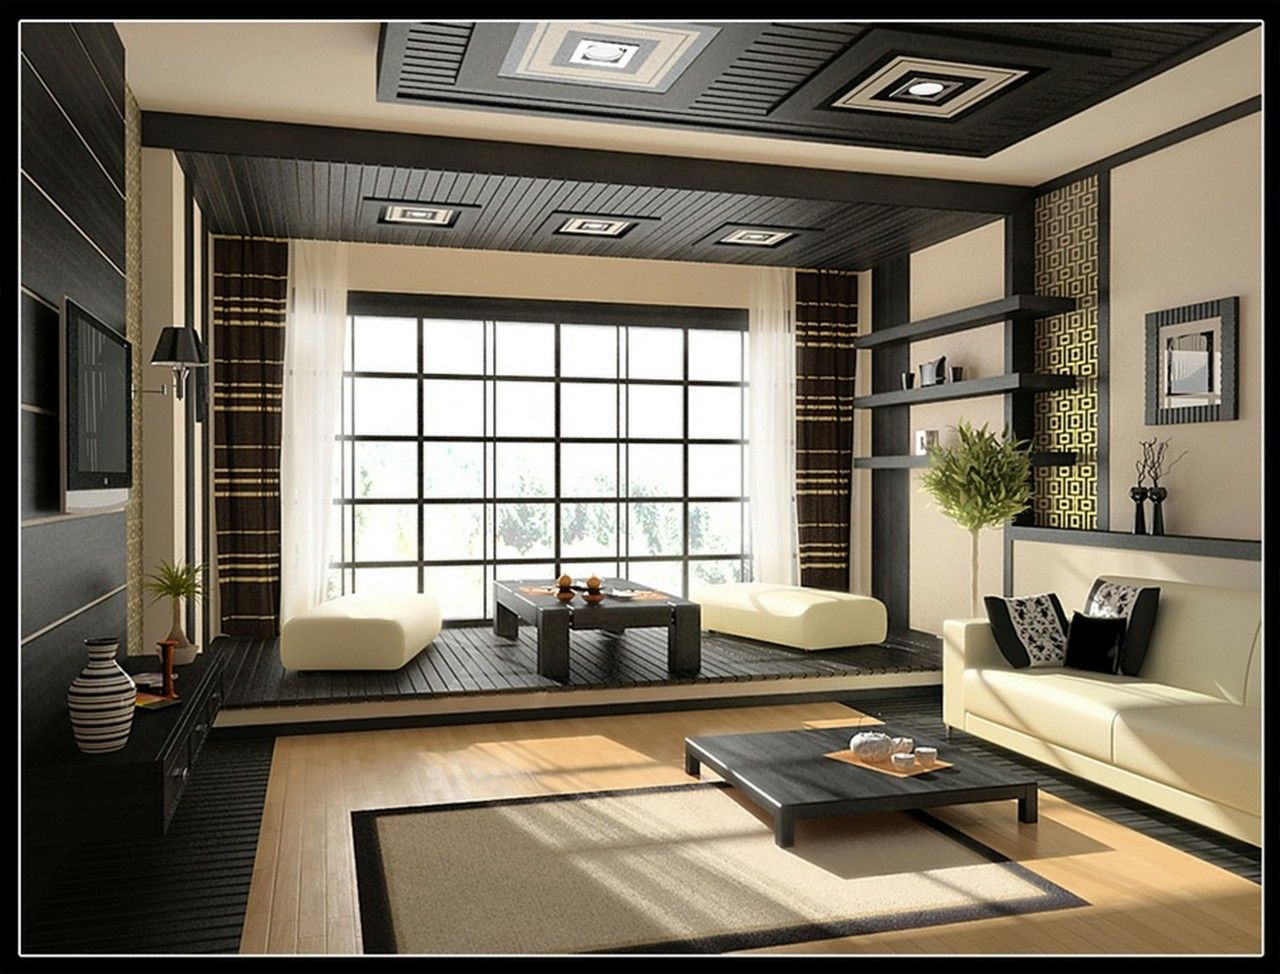 Anese Living Room Interior Design Modern Style Cream And Black Color Scheme